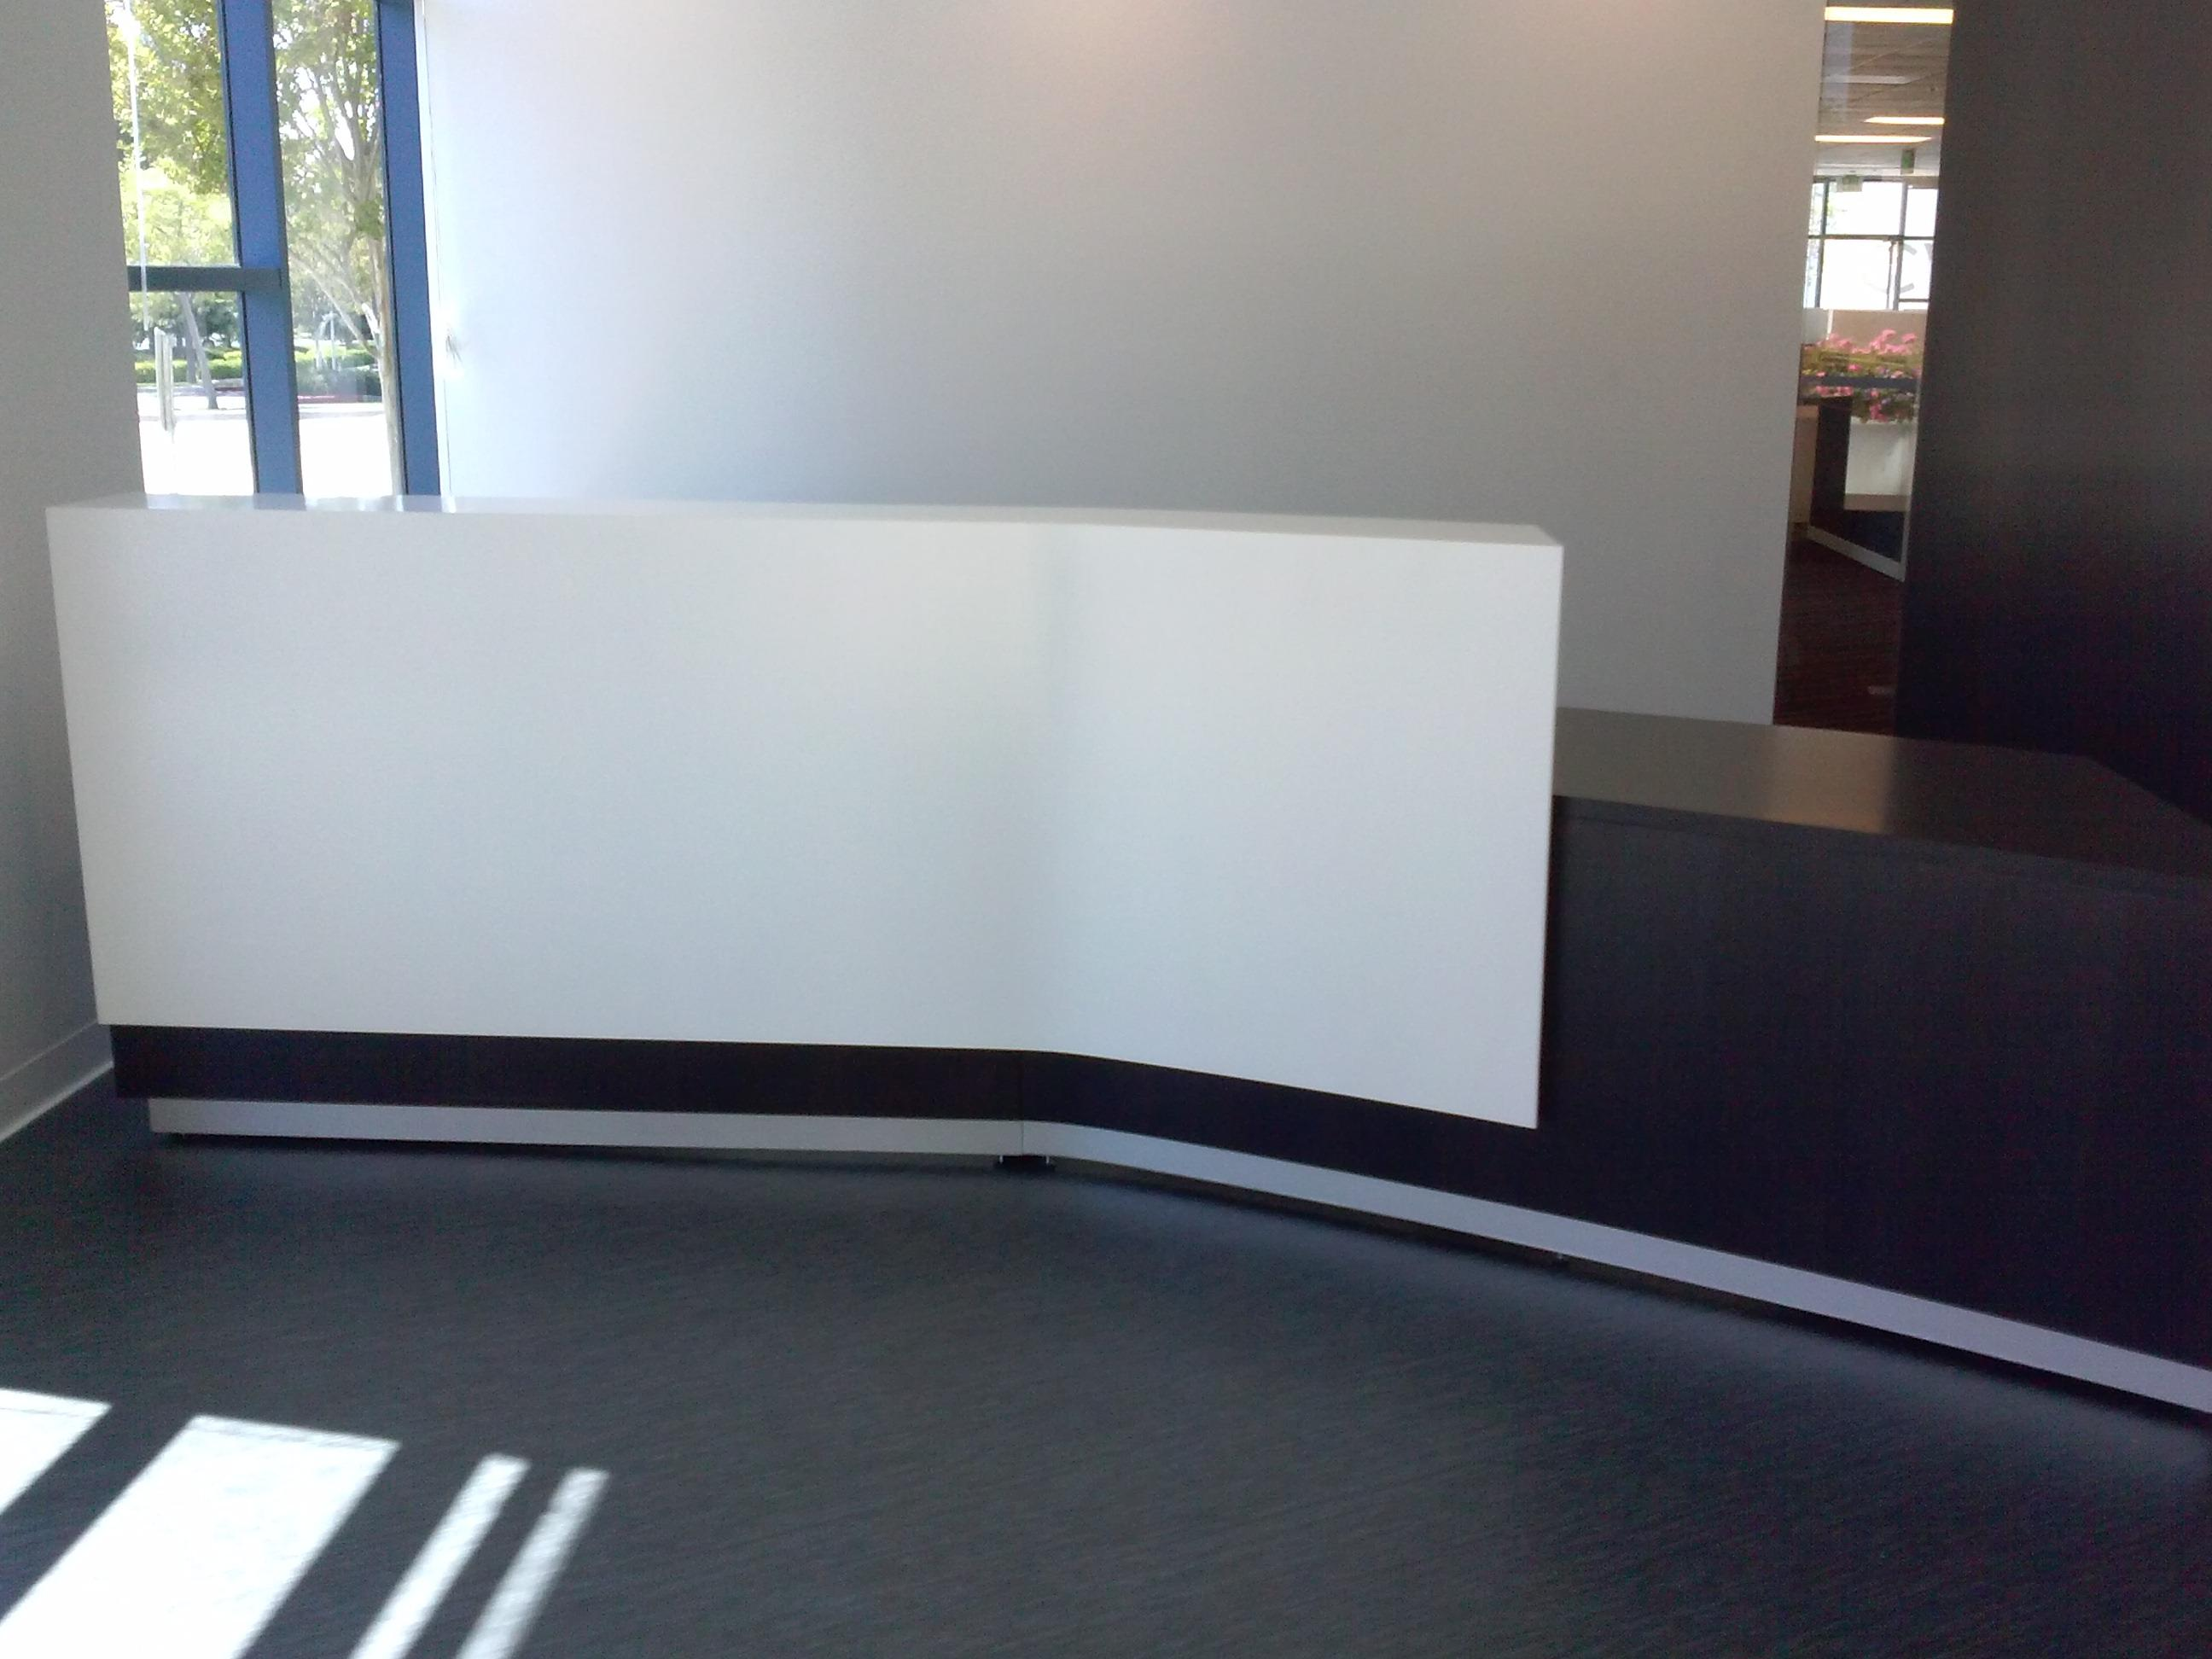 Angled Black White Reception Desk 2 Jpg